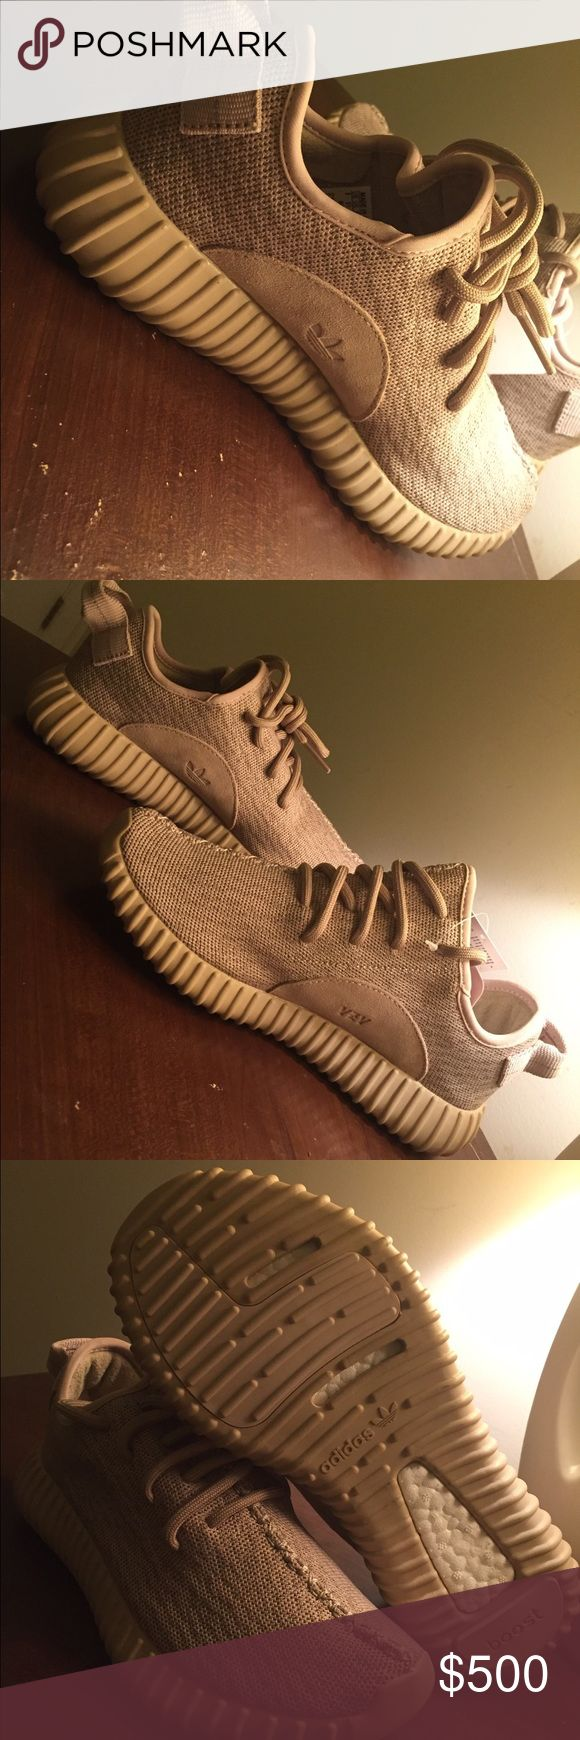 Yeezy boost 350 Oxford tan mens 6 women's 8.5 NMD Adidas Yeezy boost 350 Oxford tan size 6 Mens, size 8.5 women's. New with box IN HAND READY TO SHIP!  BUY AT YOUR OWN RISK. SUBMIT YOUR OFFERS Adidas Shoes Athletic Shoes